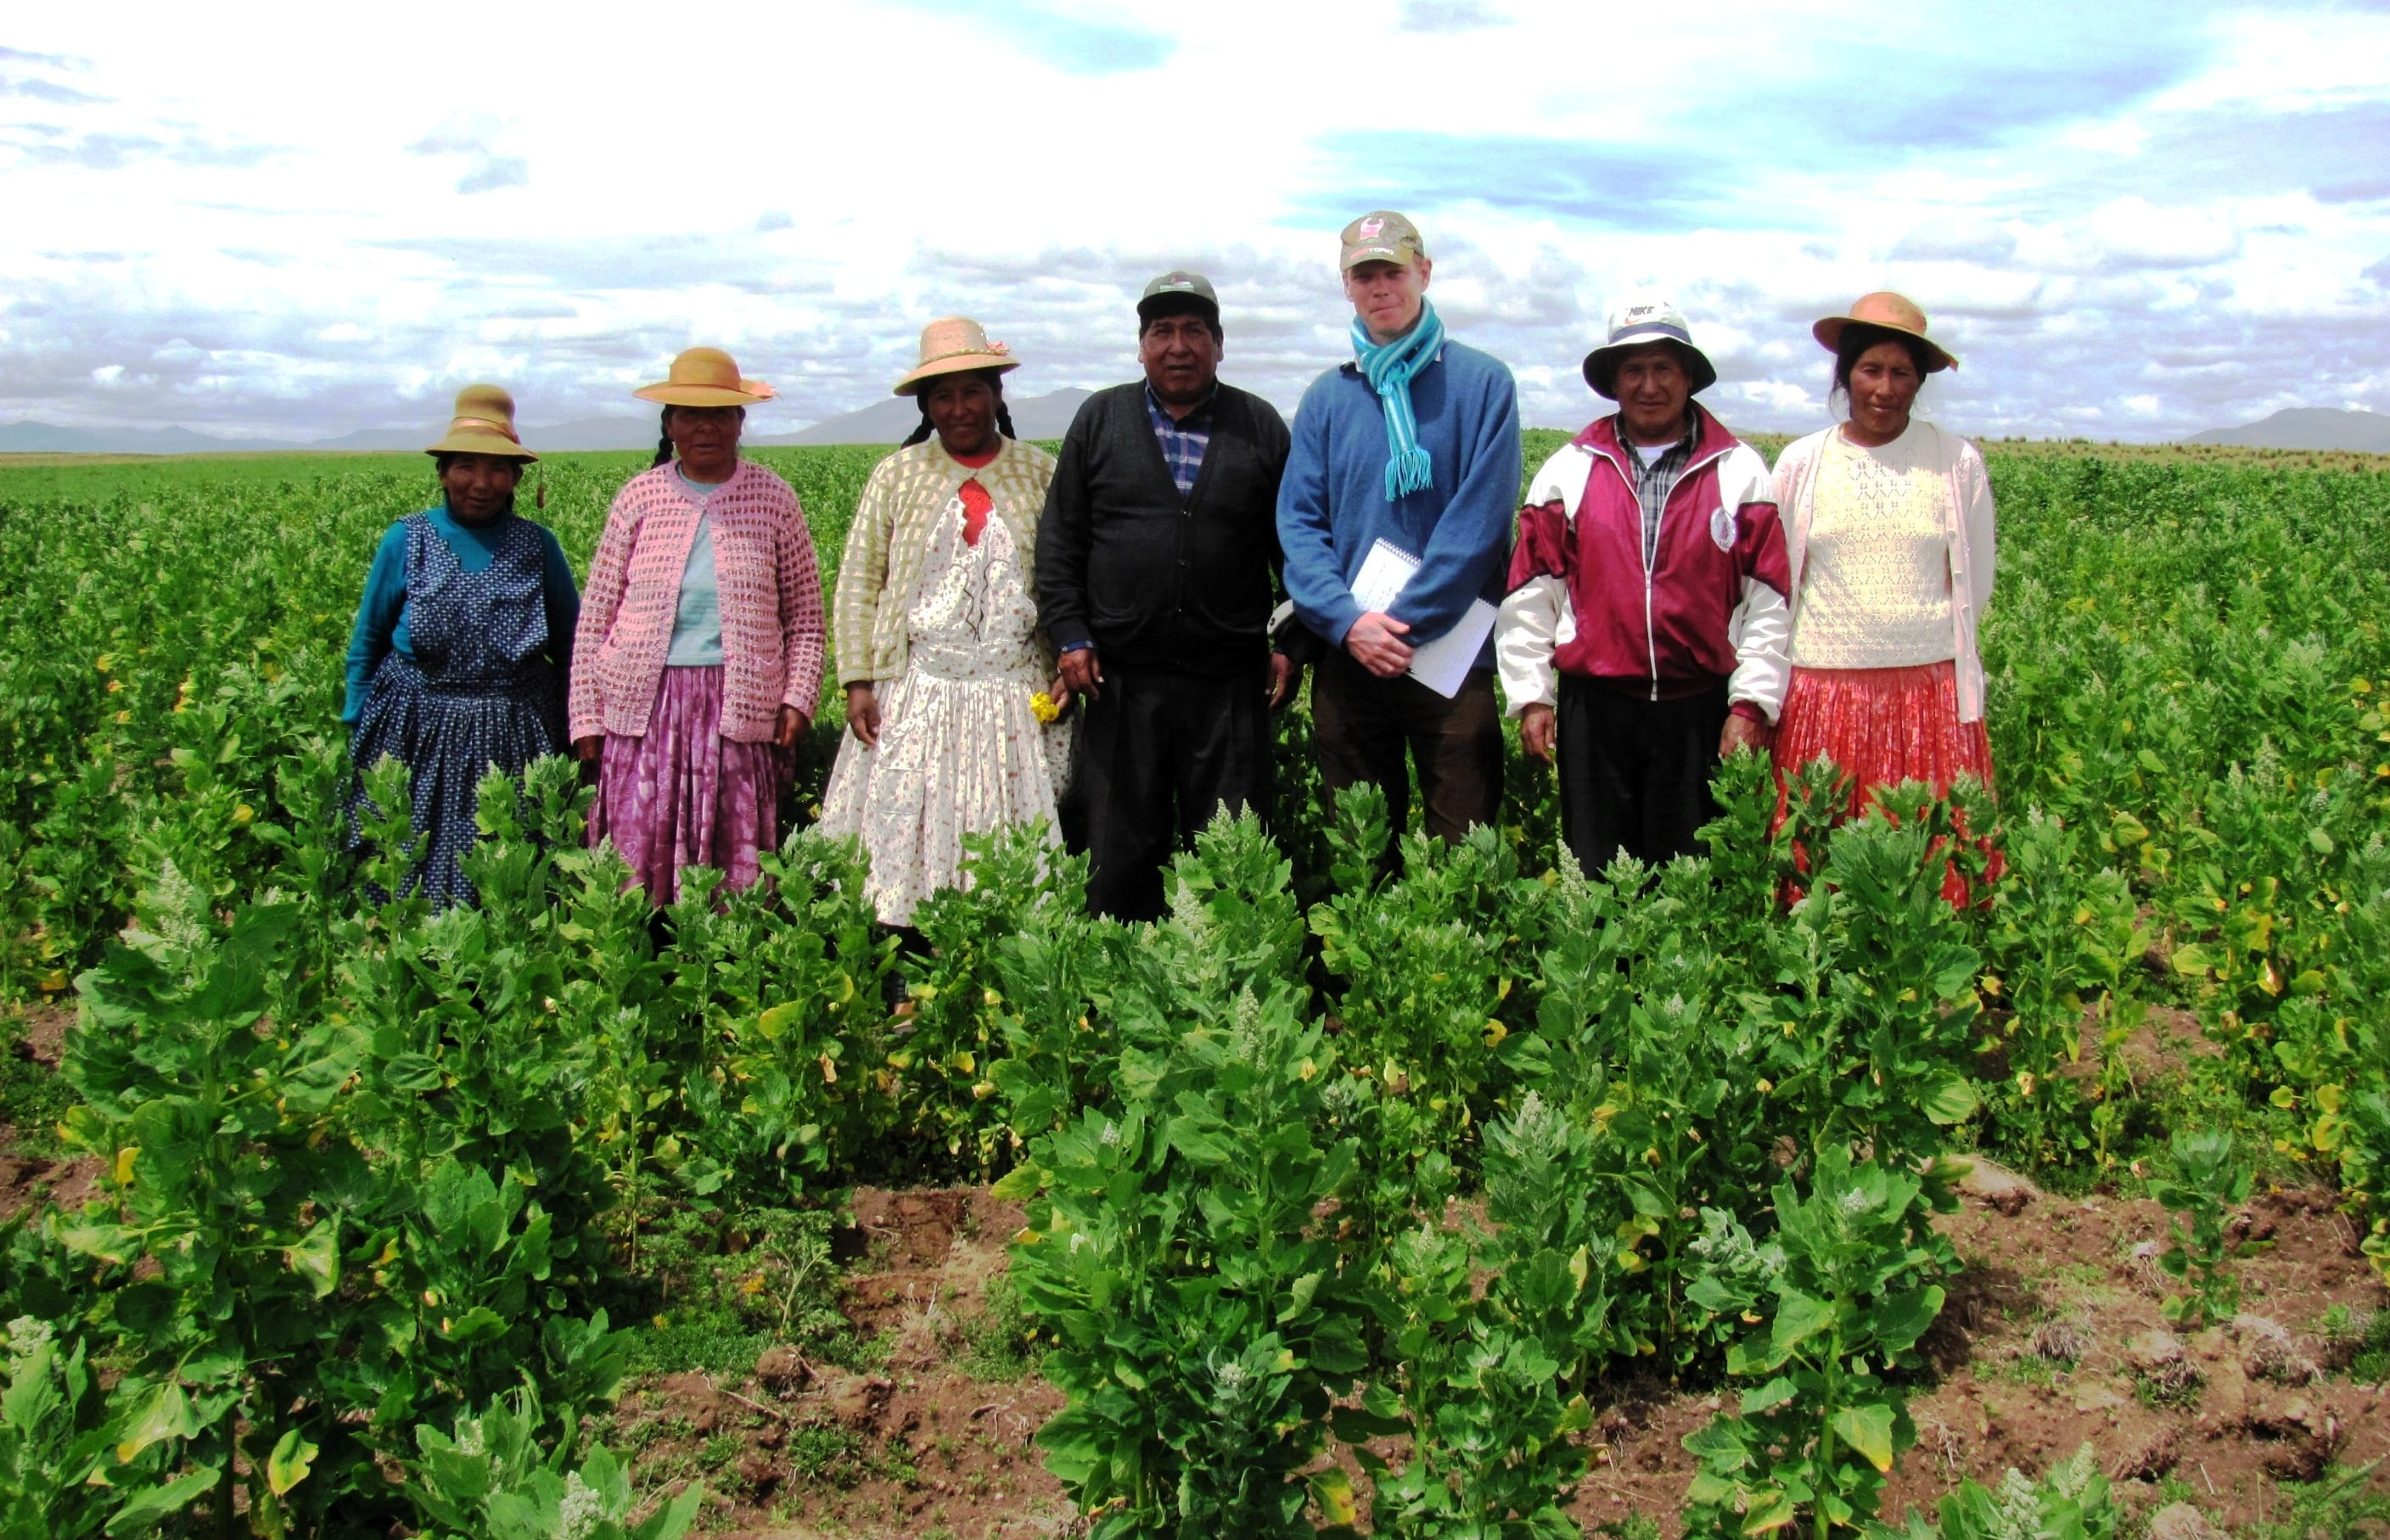 James and the farmers in a quinoa field. The farmers are wearing traditional Peruvian clothing and hats. James stands in the middle.